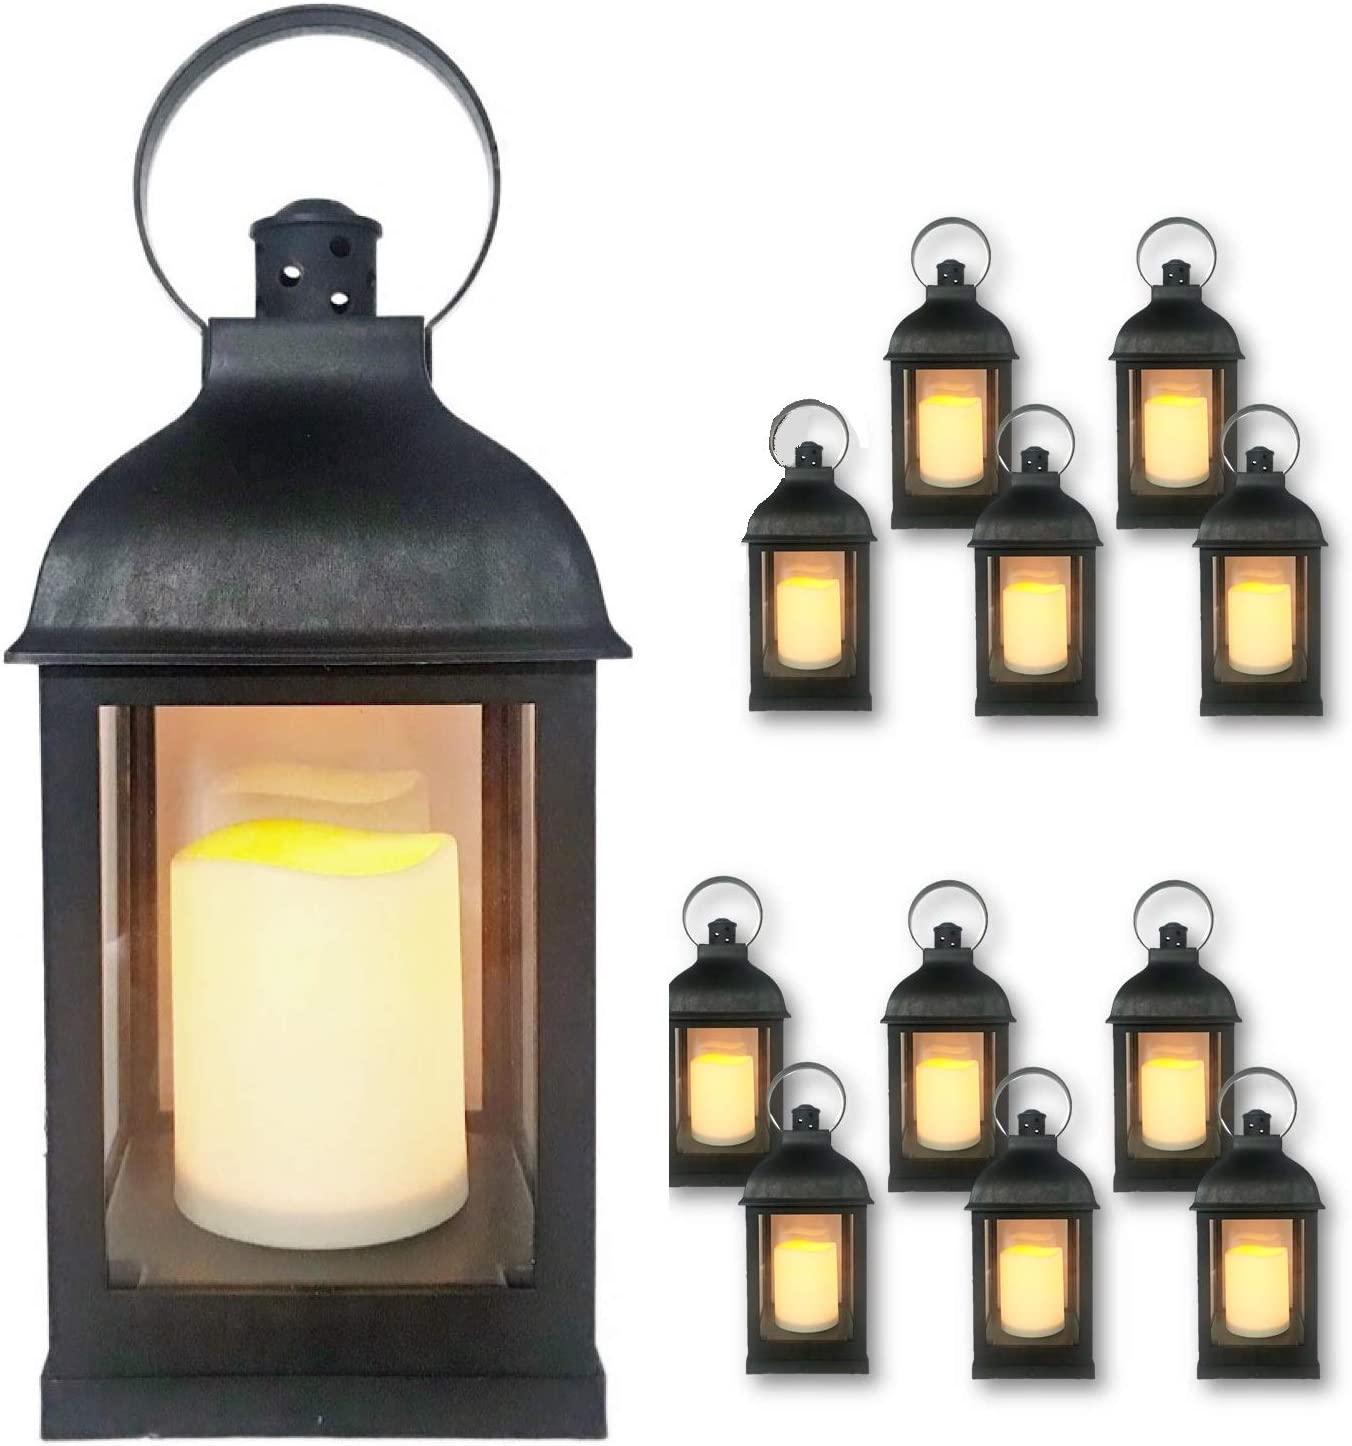 """Just In Time For Winter {12 Pc Set} 10"""" Decorative Lanterns with Flameless LED Lighted Candle, 5 Hr Timer, Antique Look Indoor Outdoor Home, Garden, Weddings - Includes 1 Bonus String Lights! Black."""